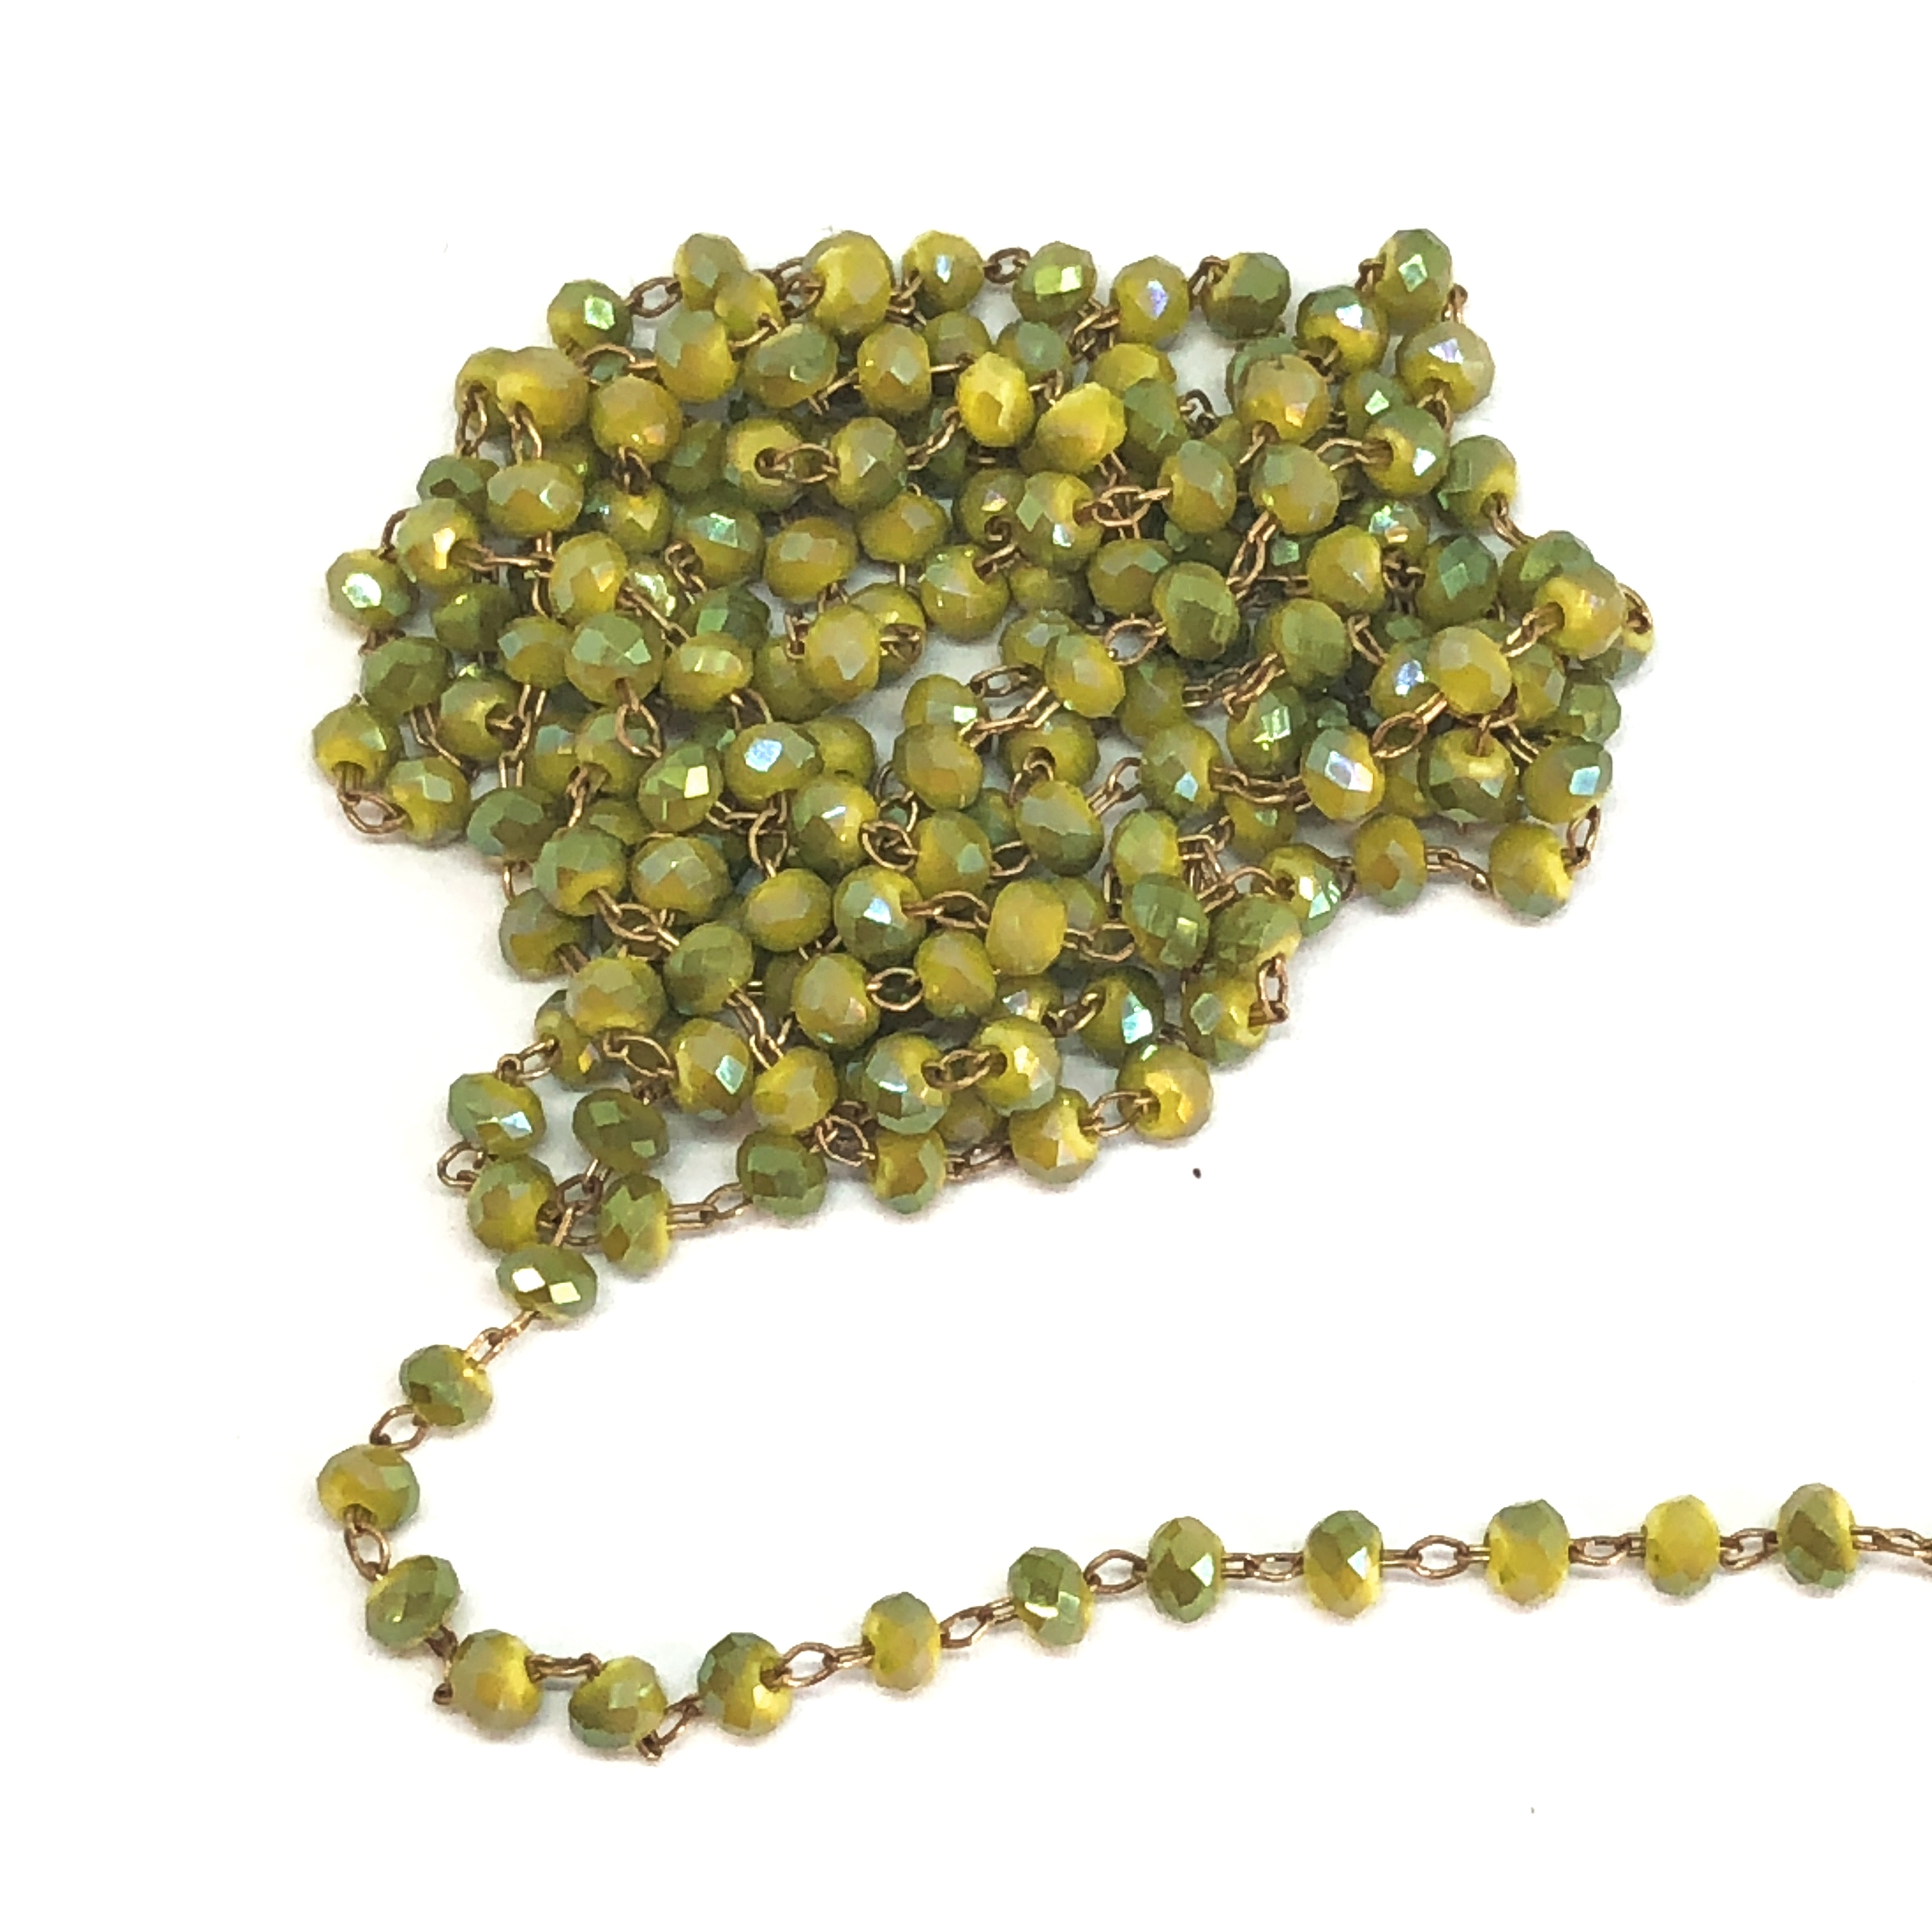 light olivine AB glass bead chain, bead and link chain, antique copper chain, light olivine glass beads, jewelry chain, jewelry making supplies, vintage supplies, light olivine, bead chain, bead chain, glass beads, chain, beaded chain, glass beads, 07828